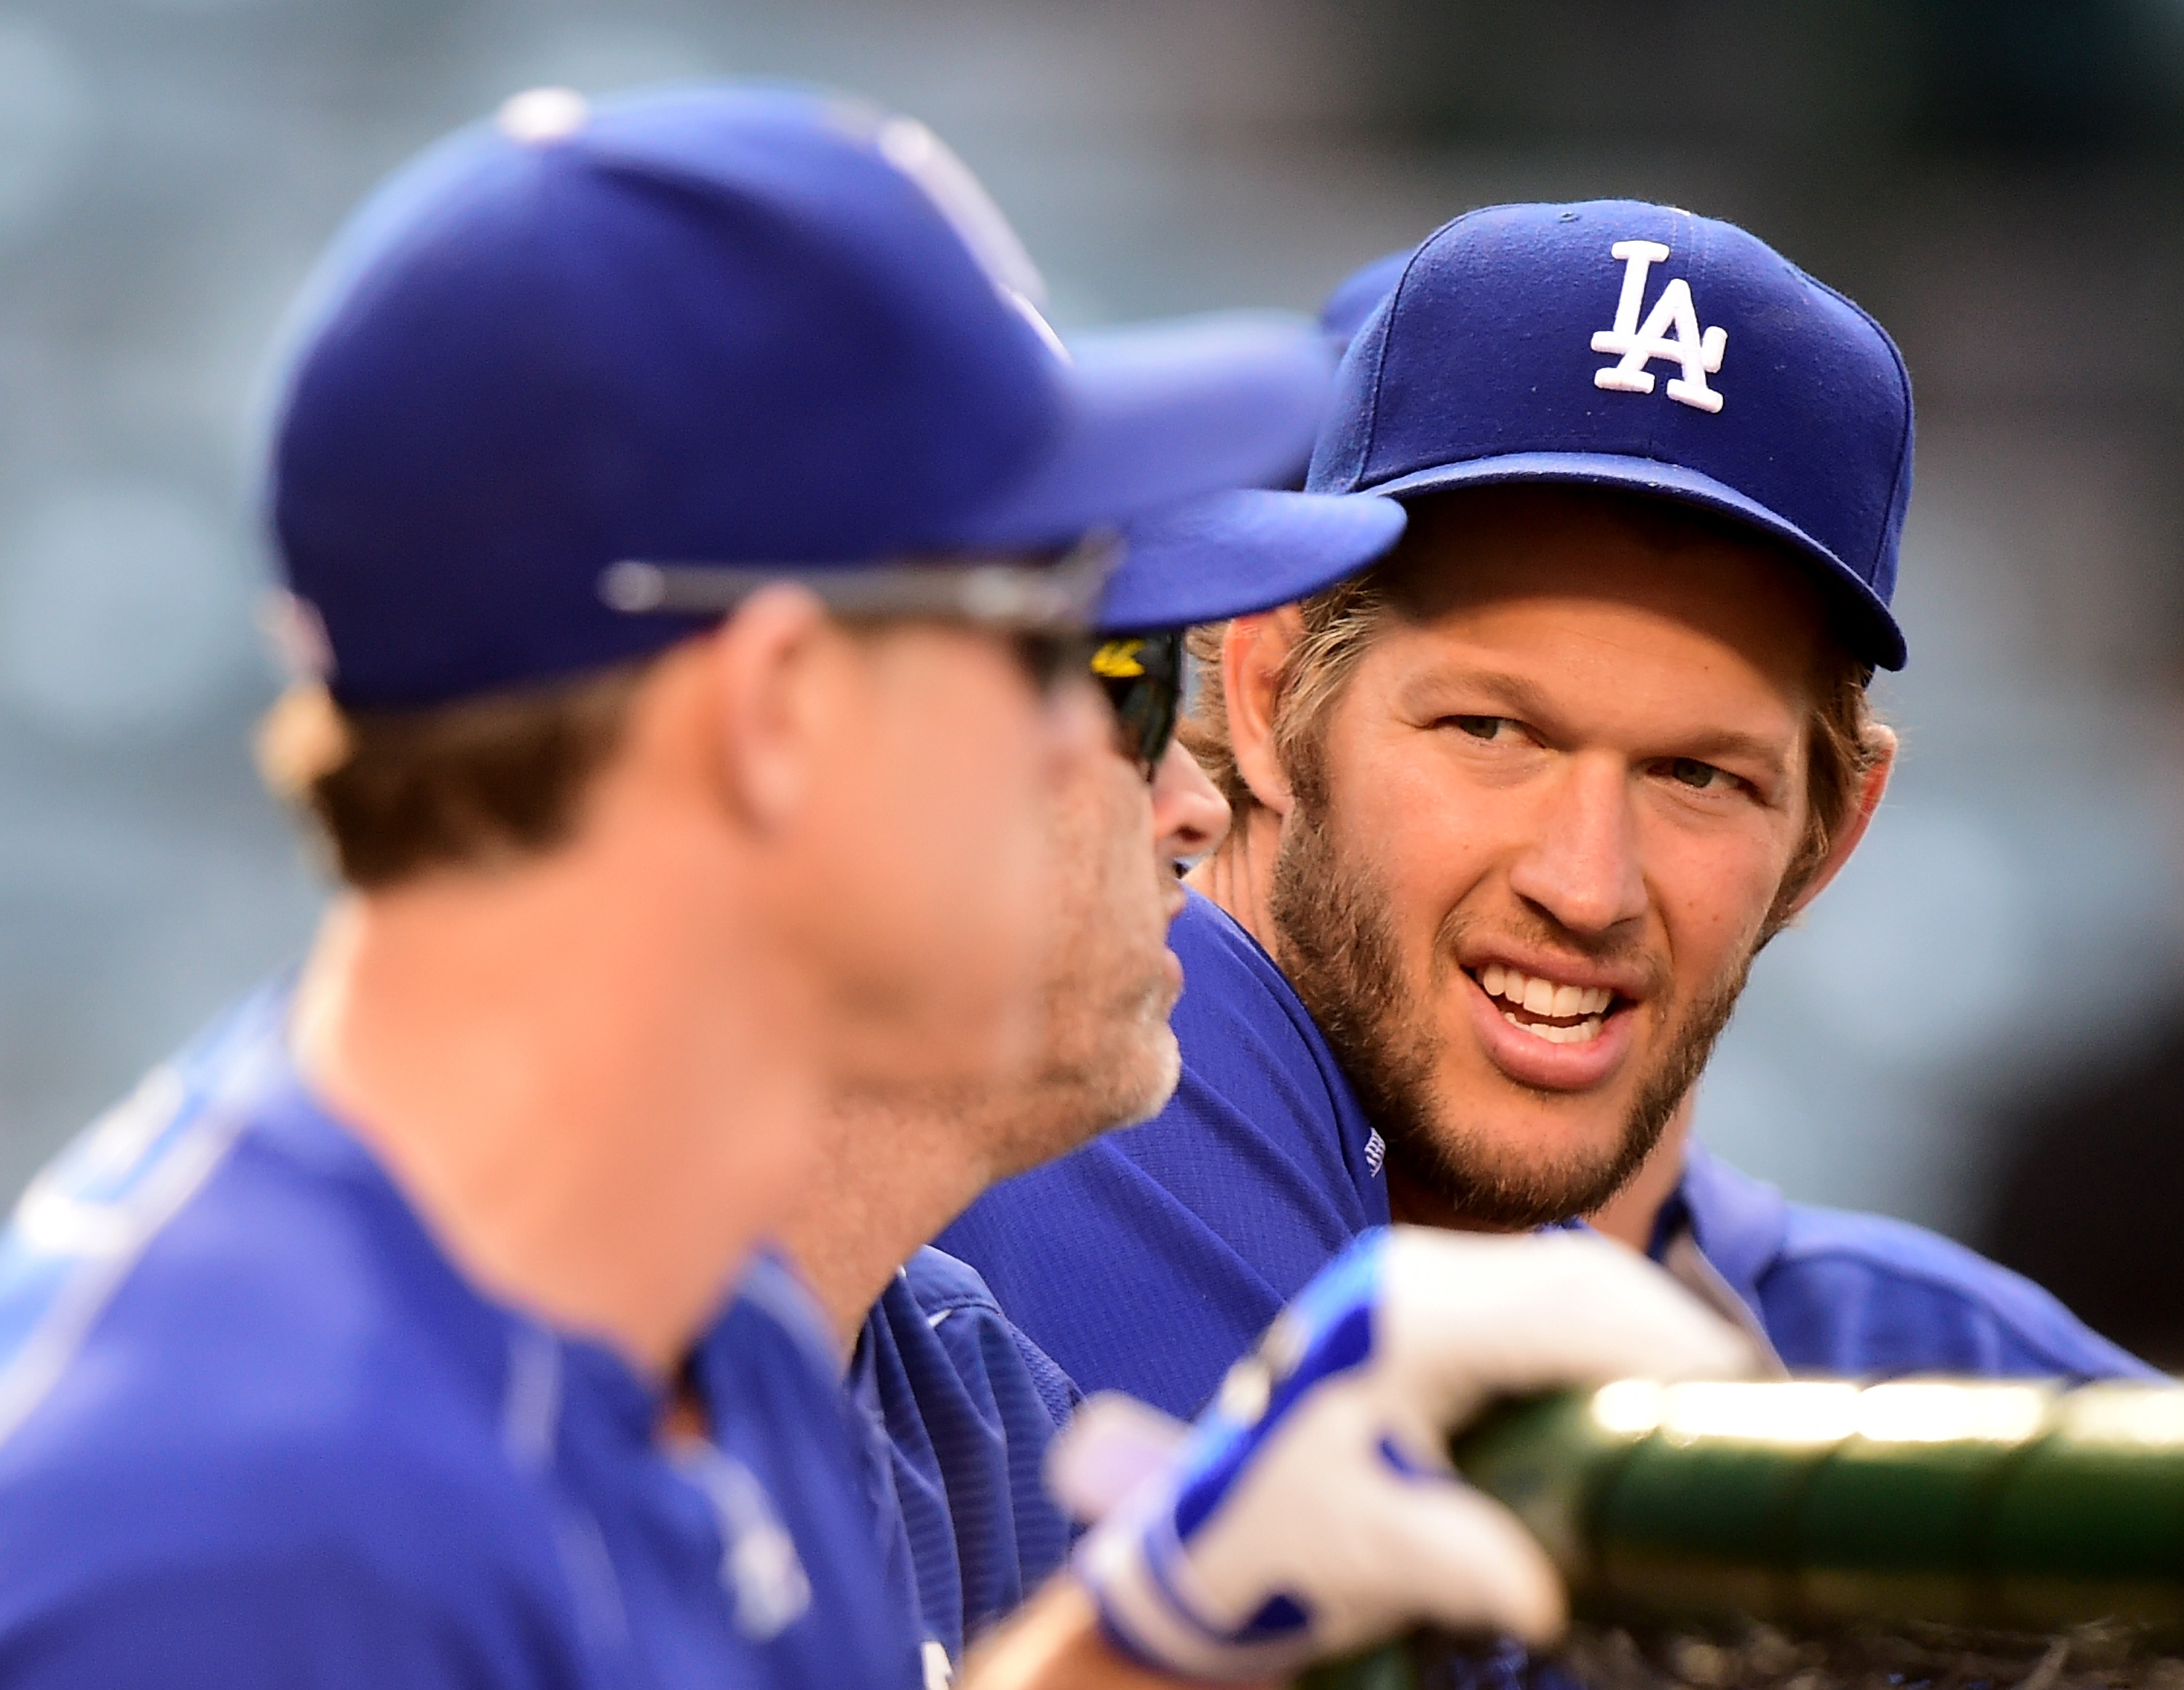 Clayton Kershaw is on pace for another stellar season in 2016.